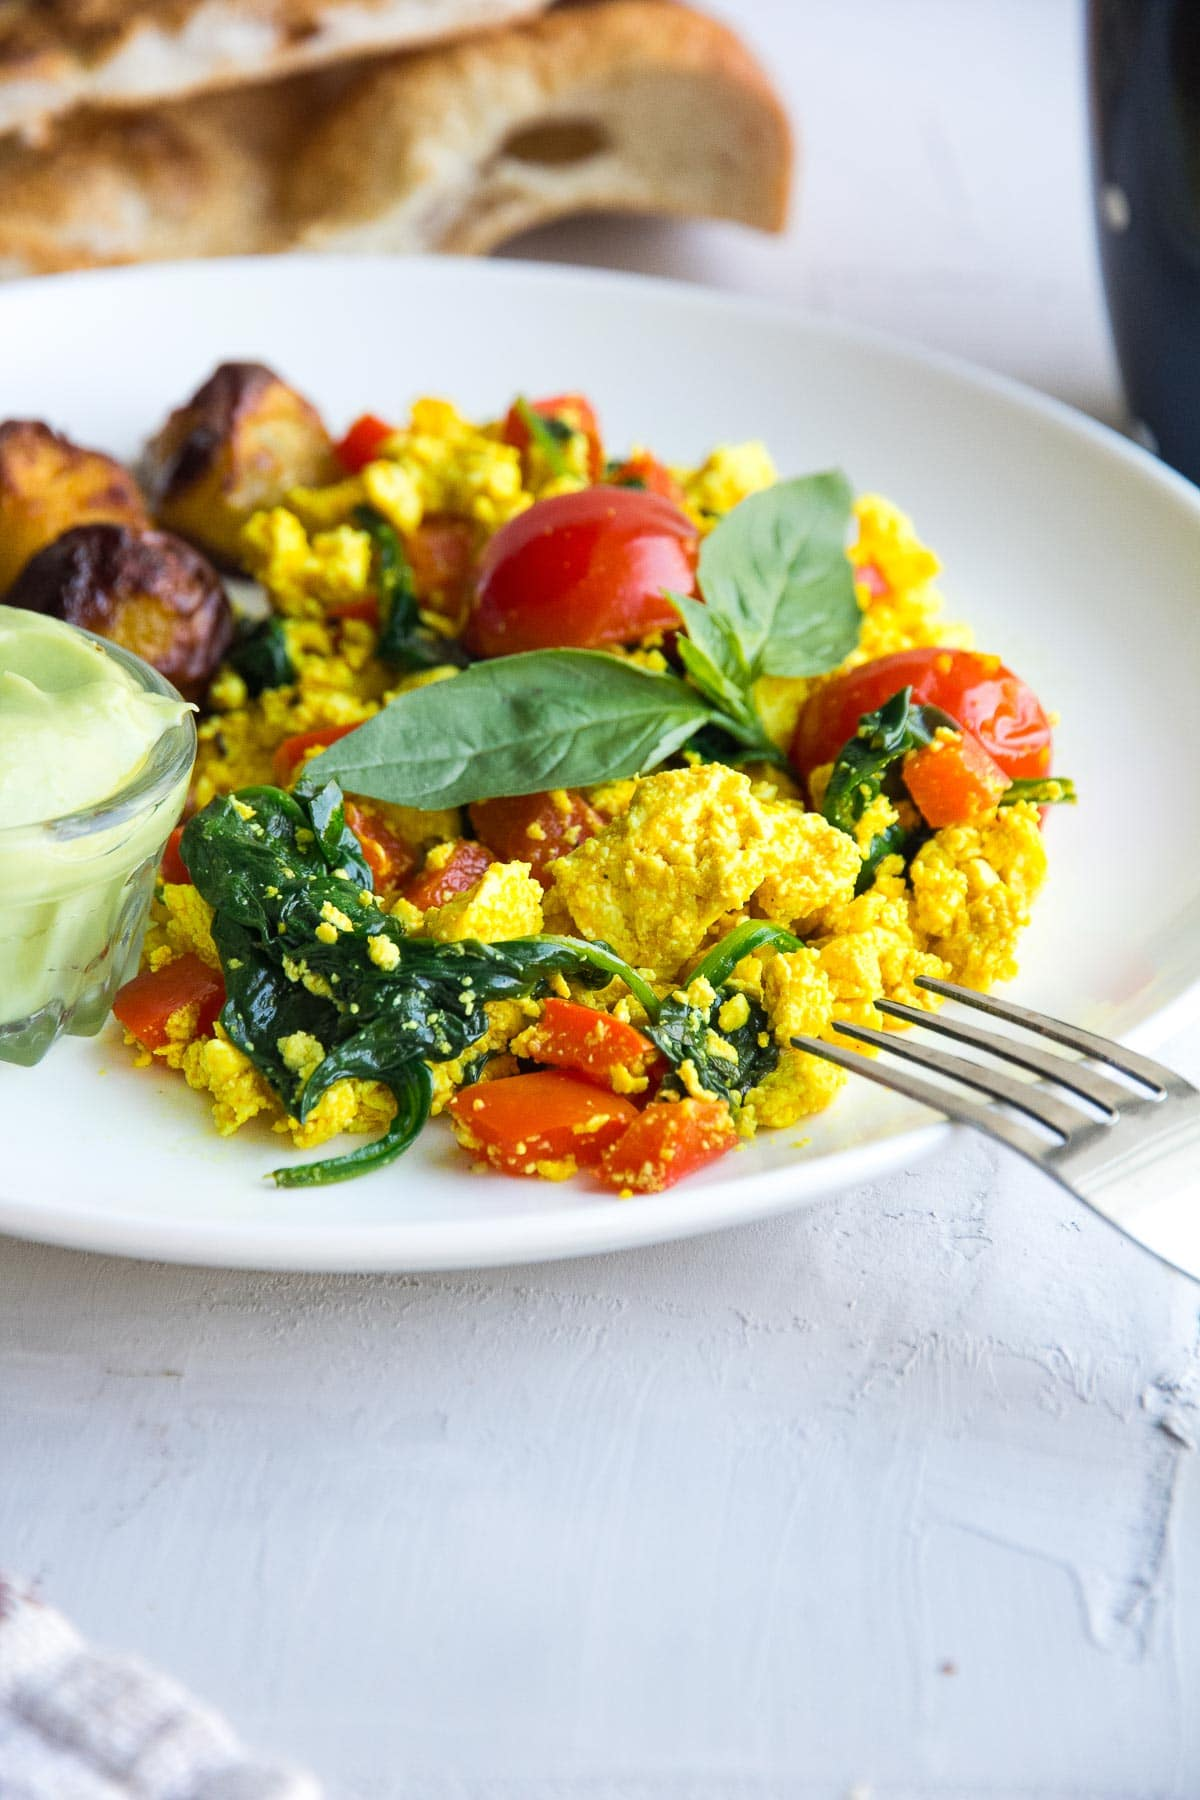 Healthy vegan tofu scramble recipe with spinach and tomatoes.